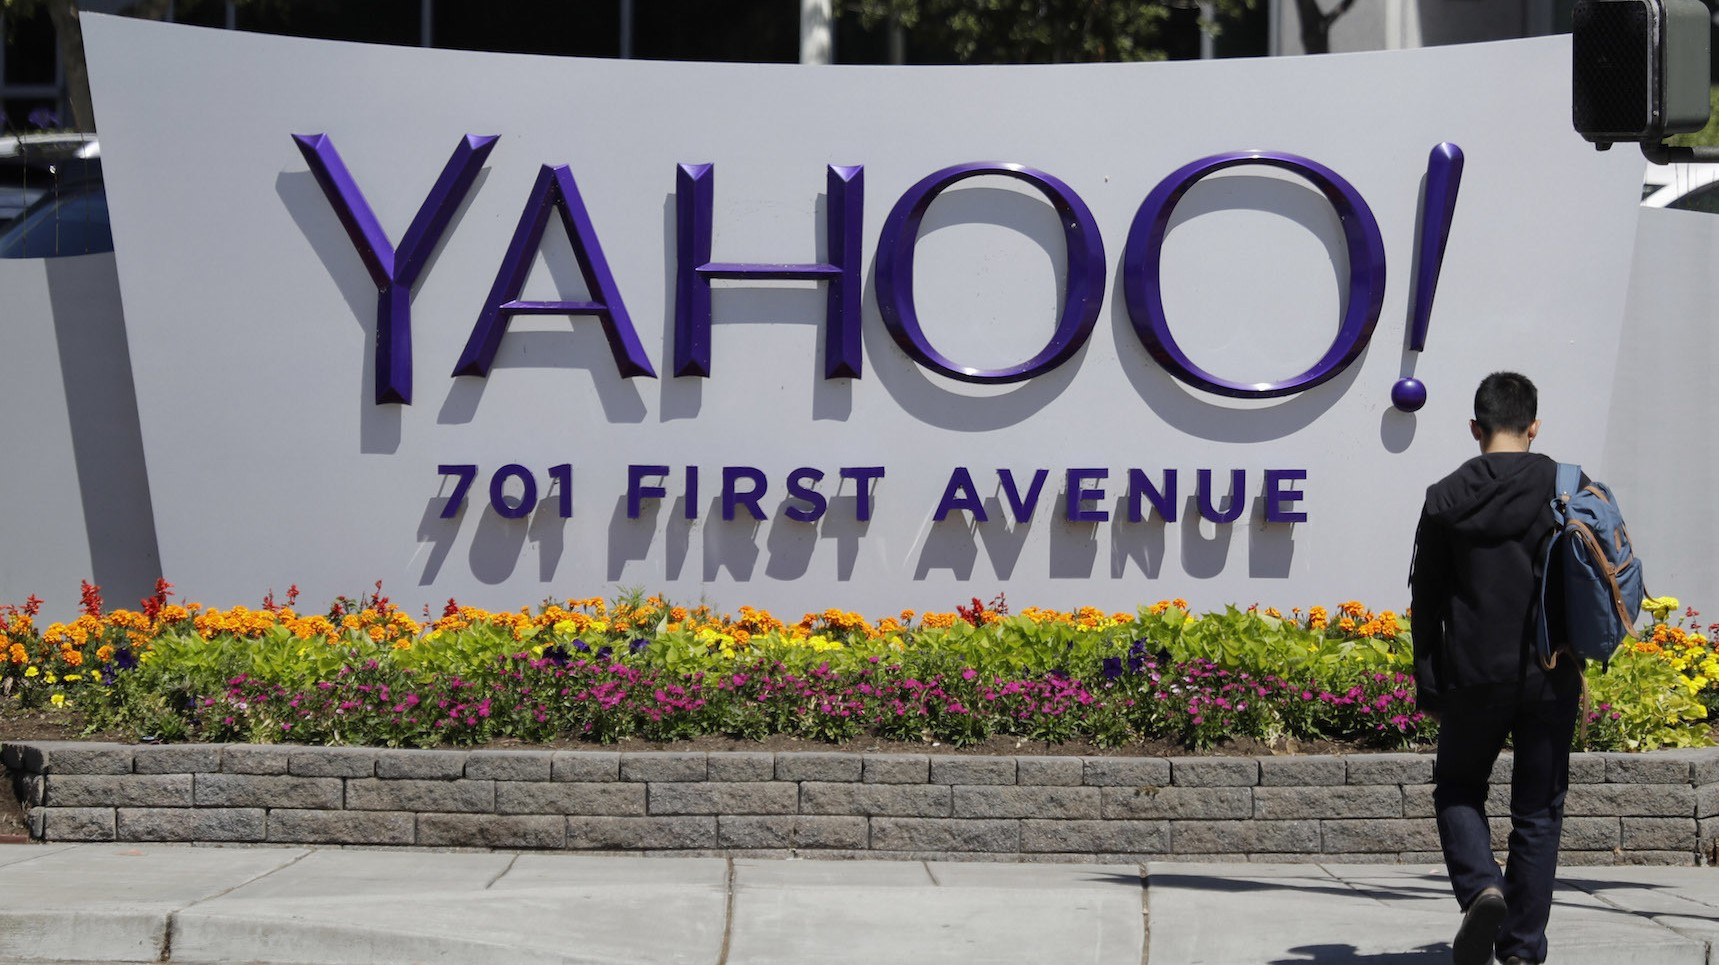 Verizon is going to buy Yahoo's web business for $4.8 billion